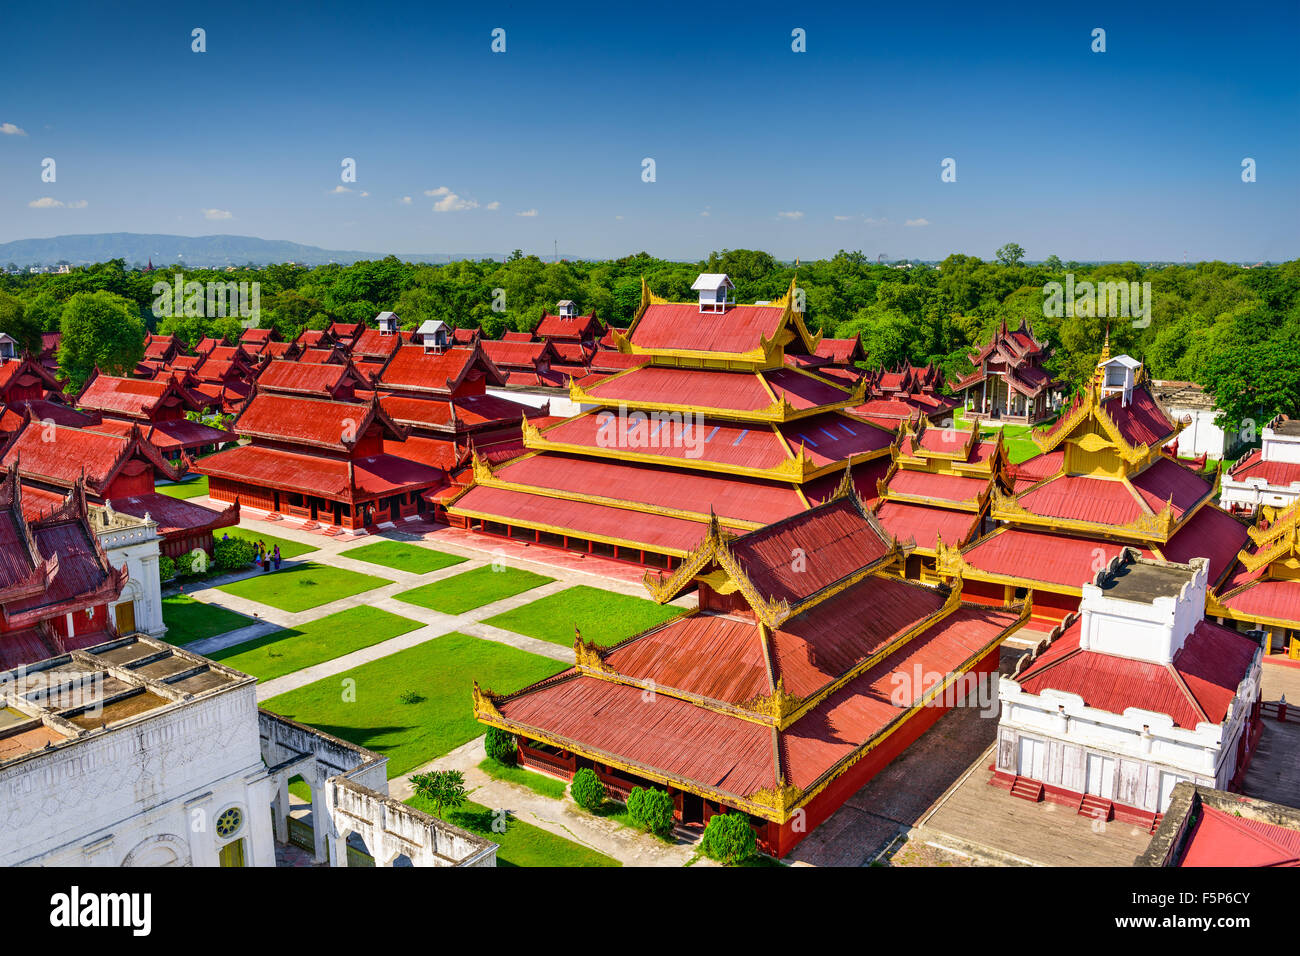 Mandalay, Myanmar buildings on the Royal Palace grounds. - Stock Image